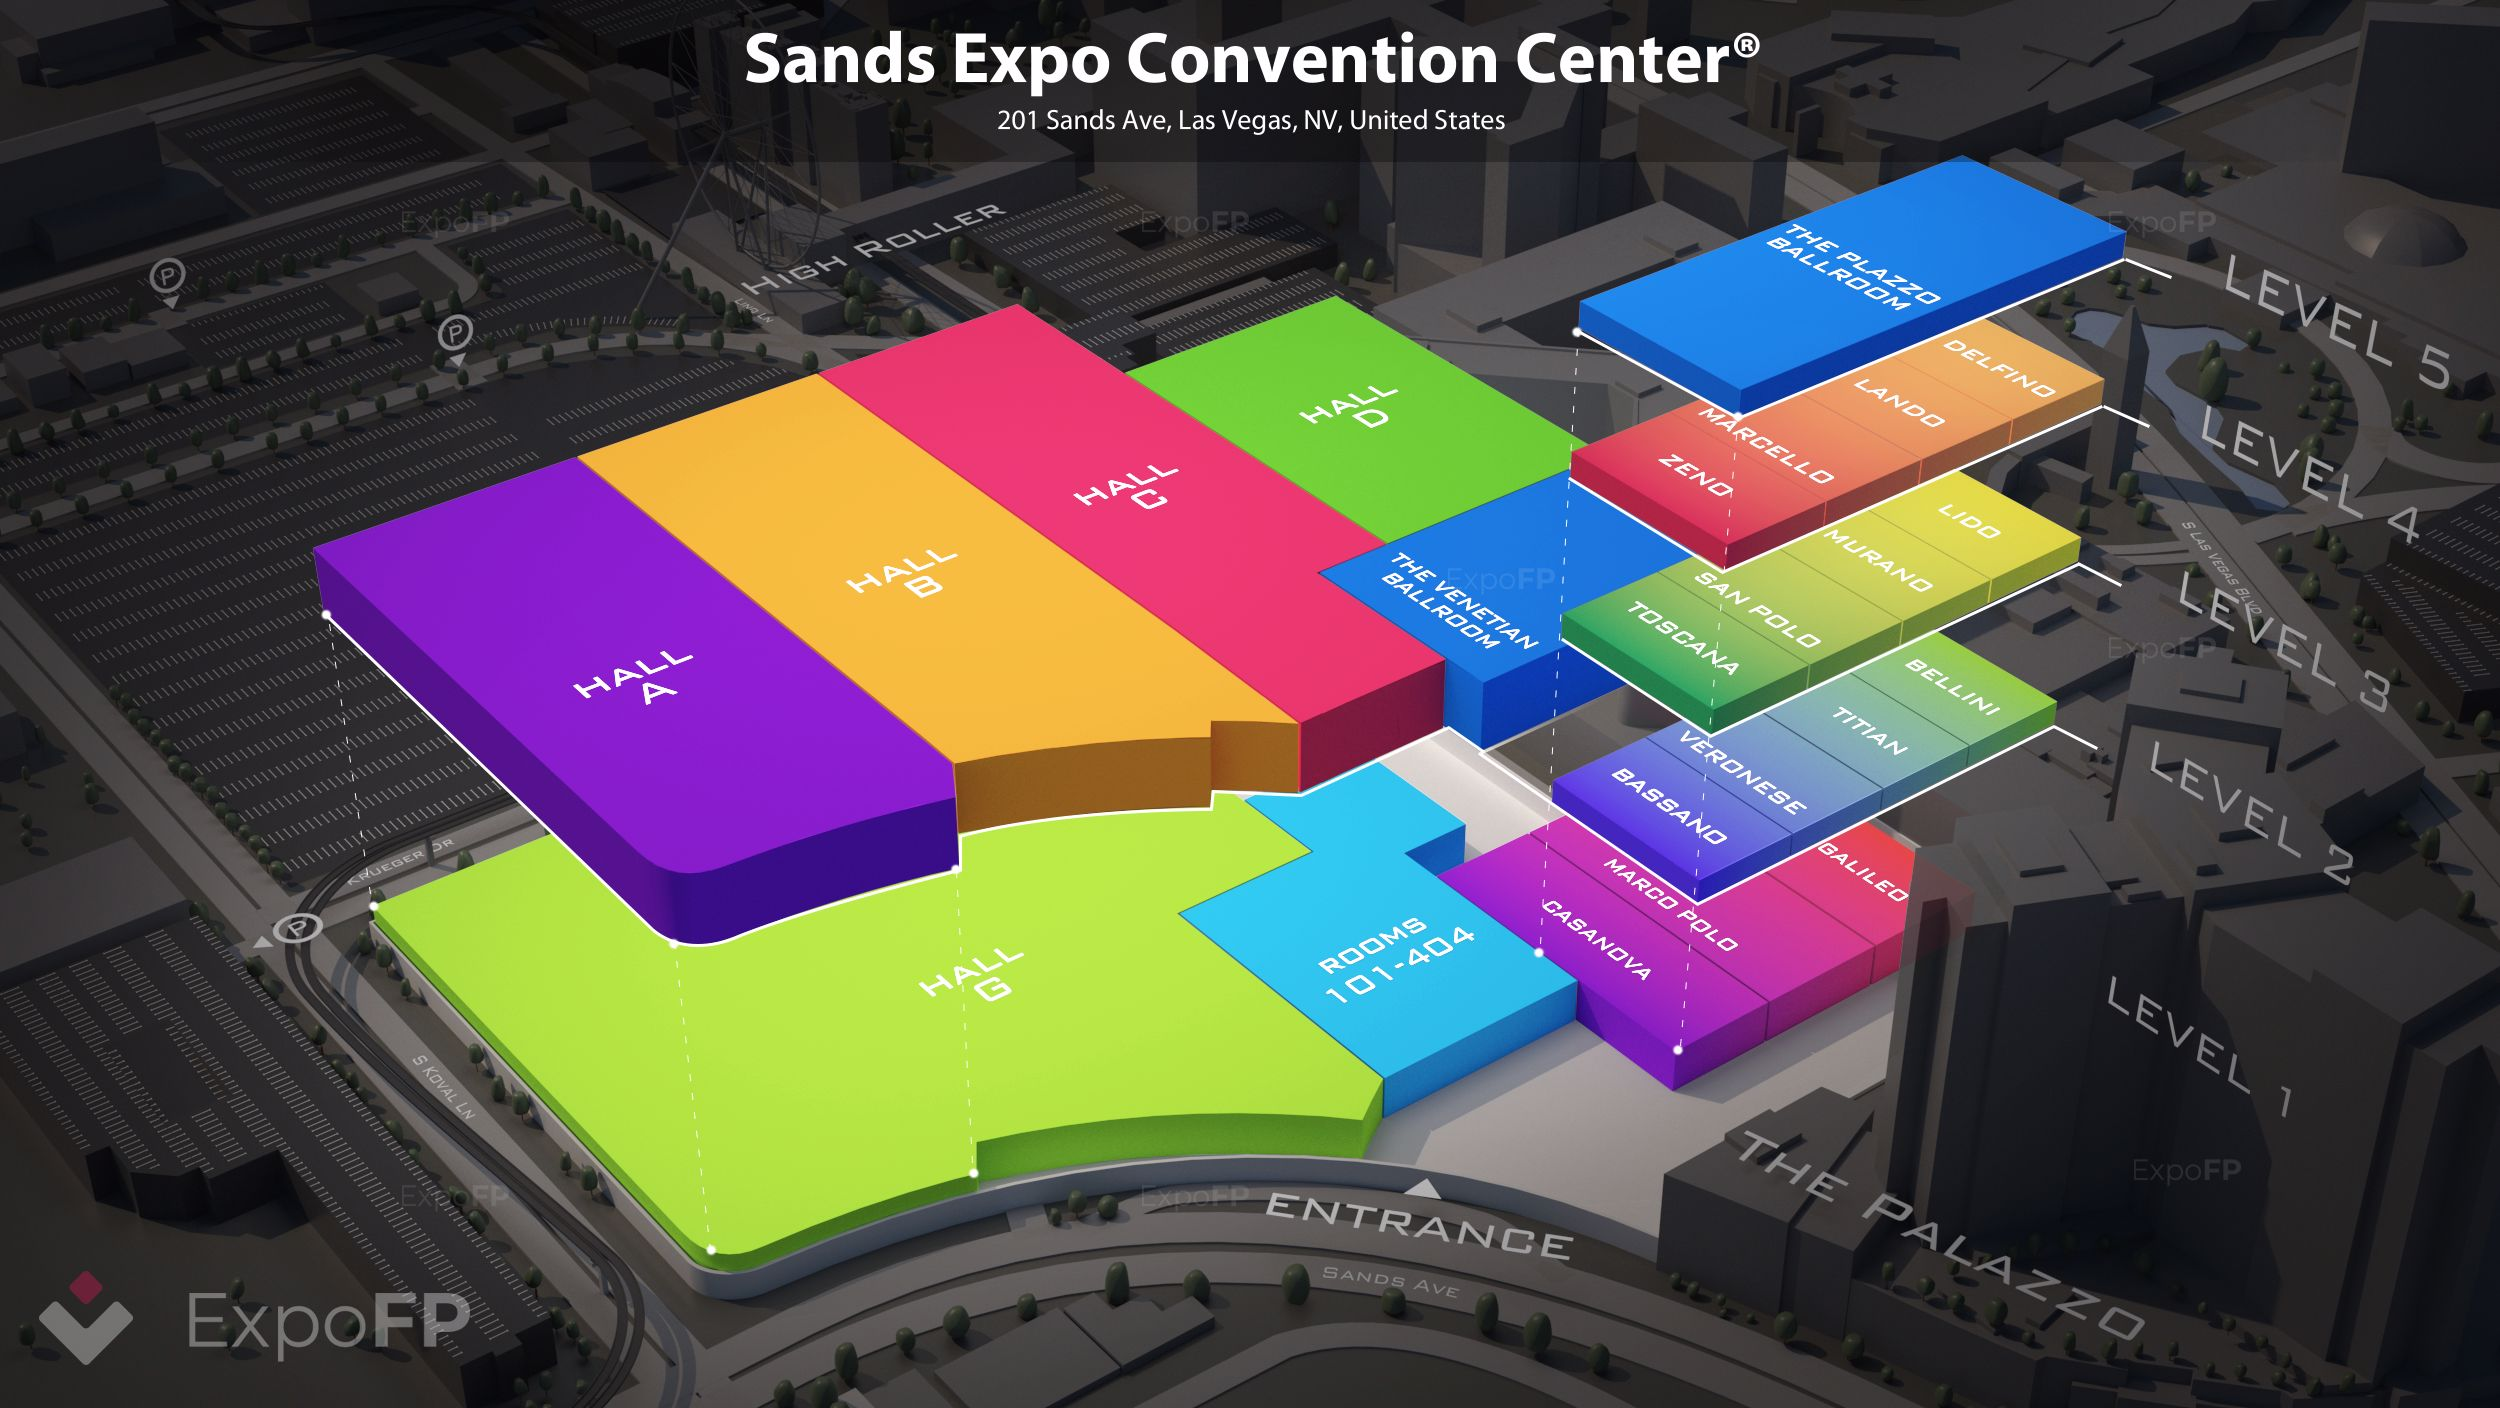 Off-price specialist show - fall 2020 las vegas | sands expo convention center floorplan | off-price specialist show - fall 2020